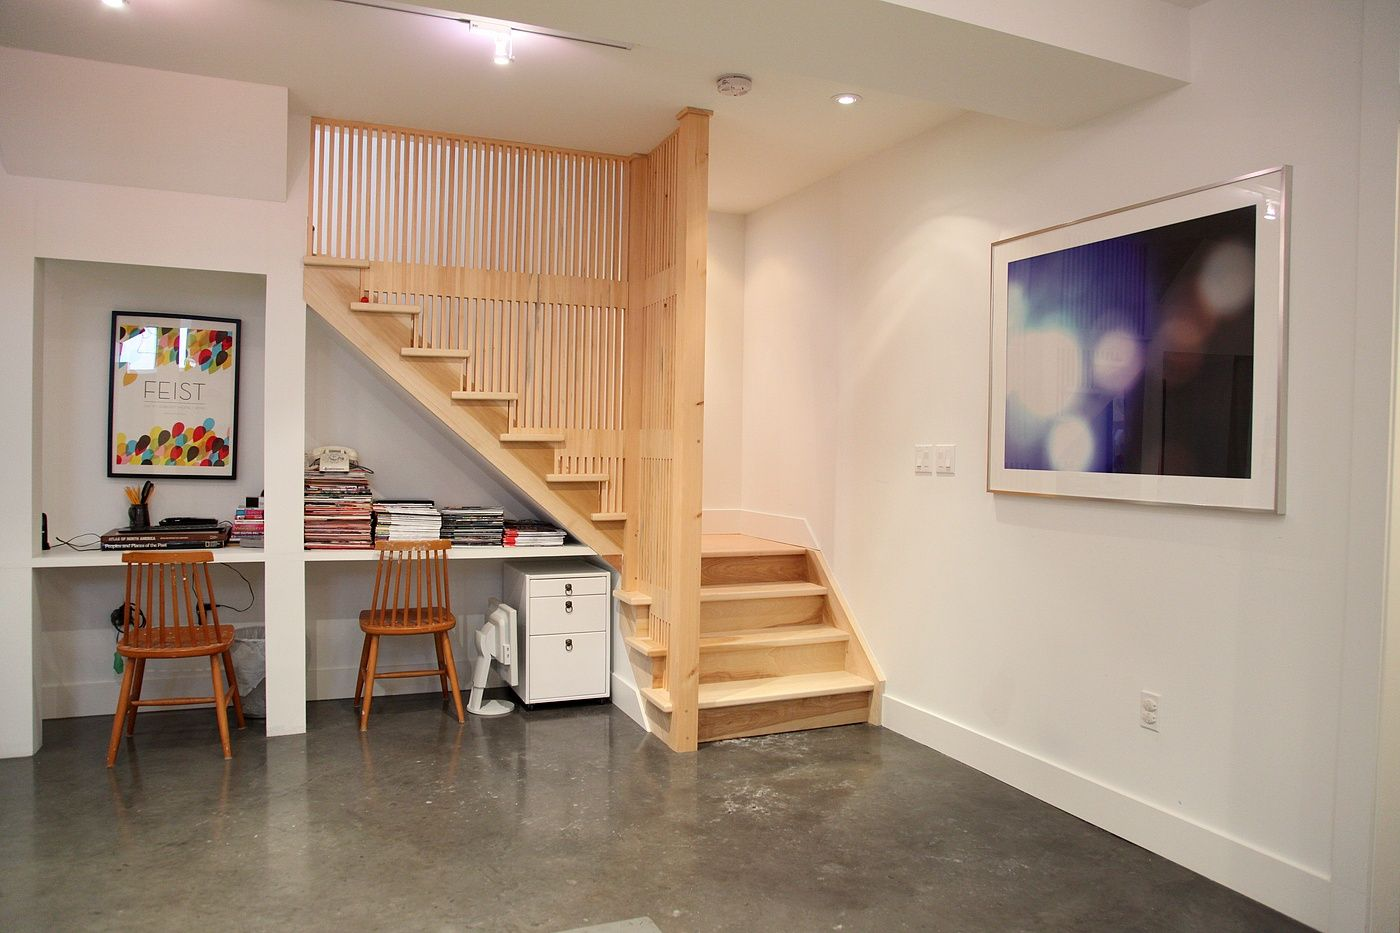 Basement Stair Ceiling Lighting: Track Lighting For The Basement. It Appears The Light Is